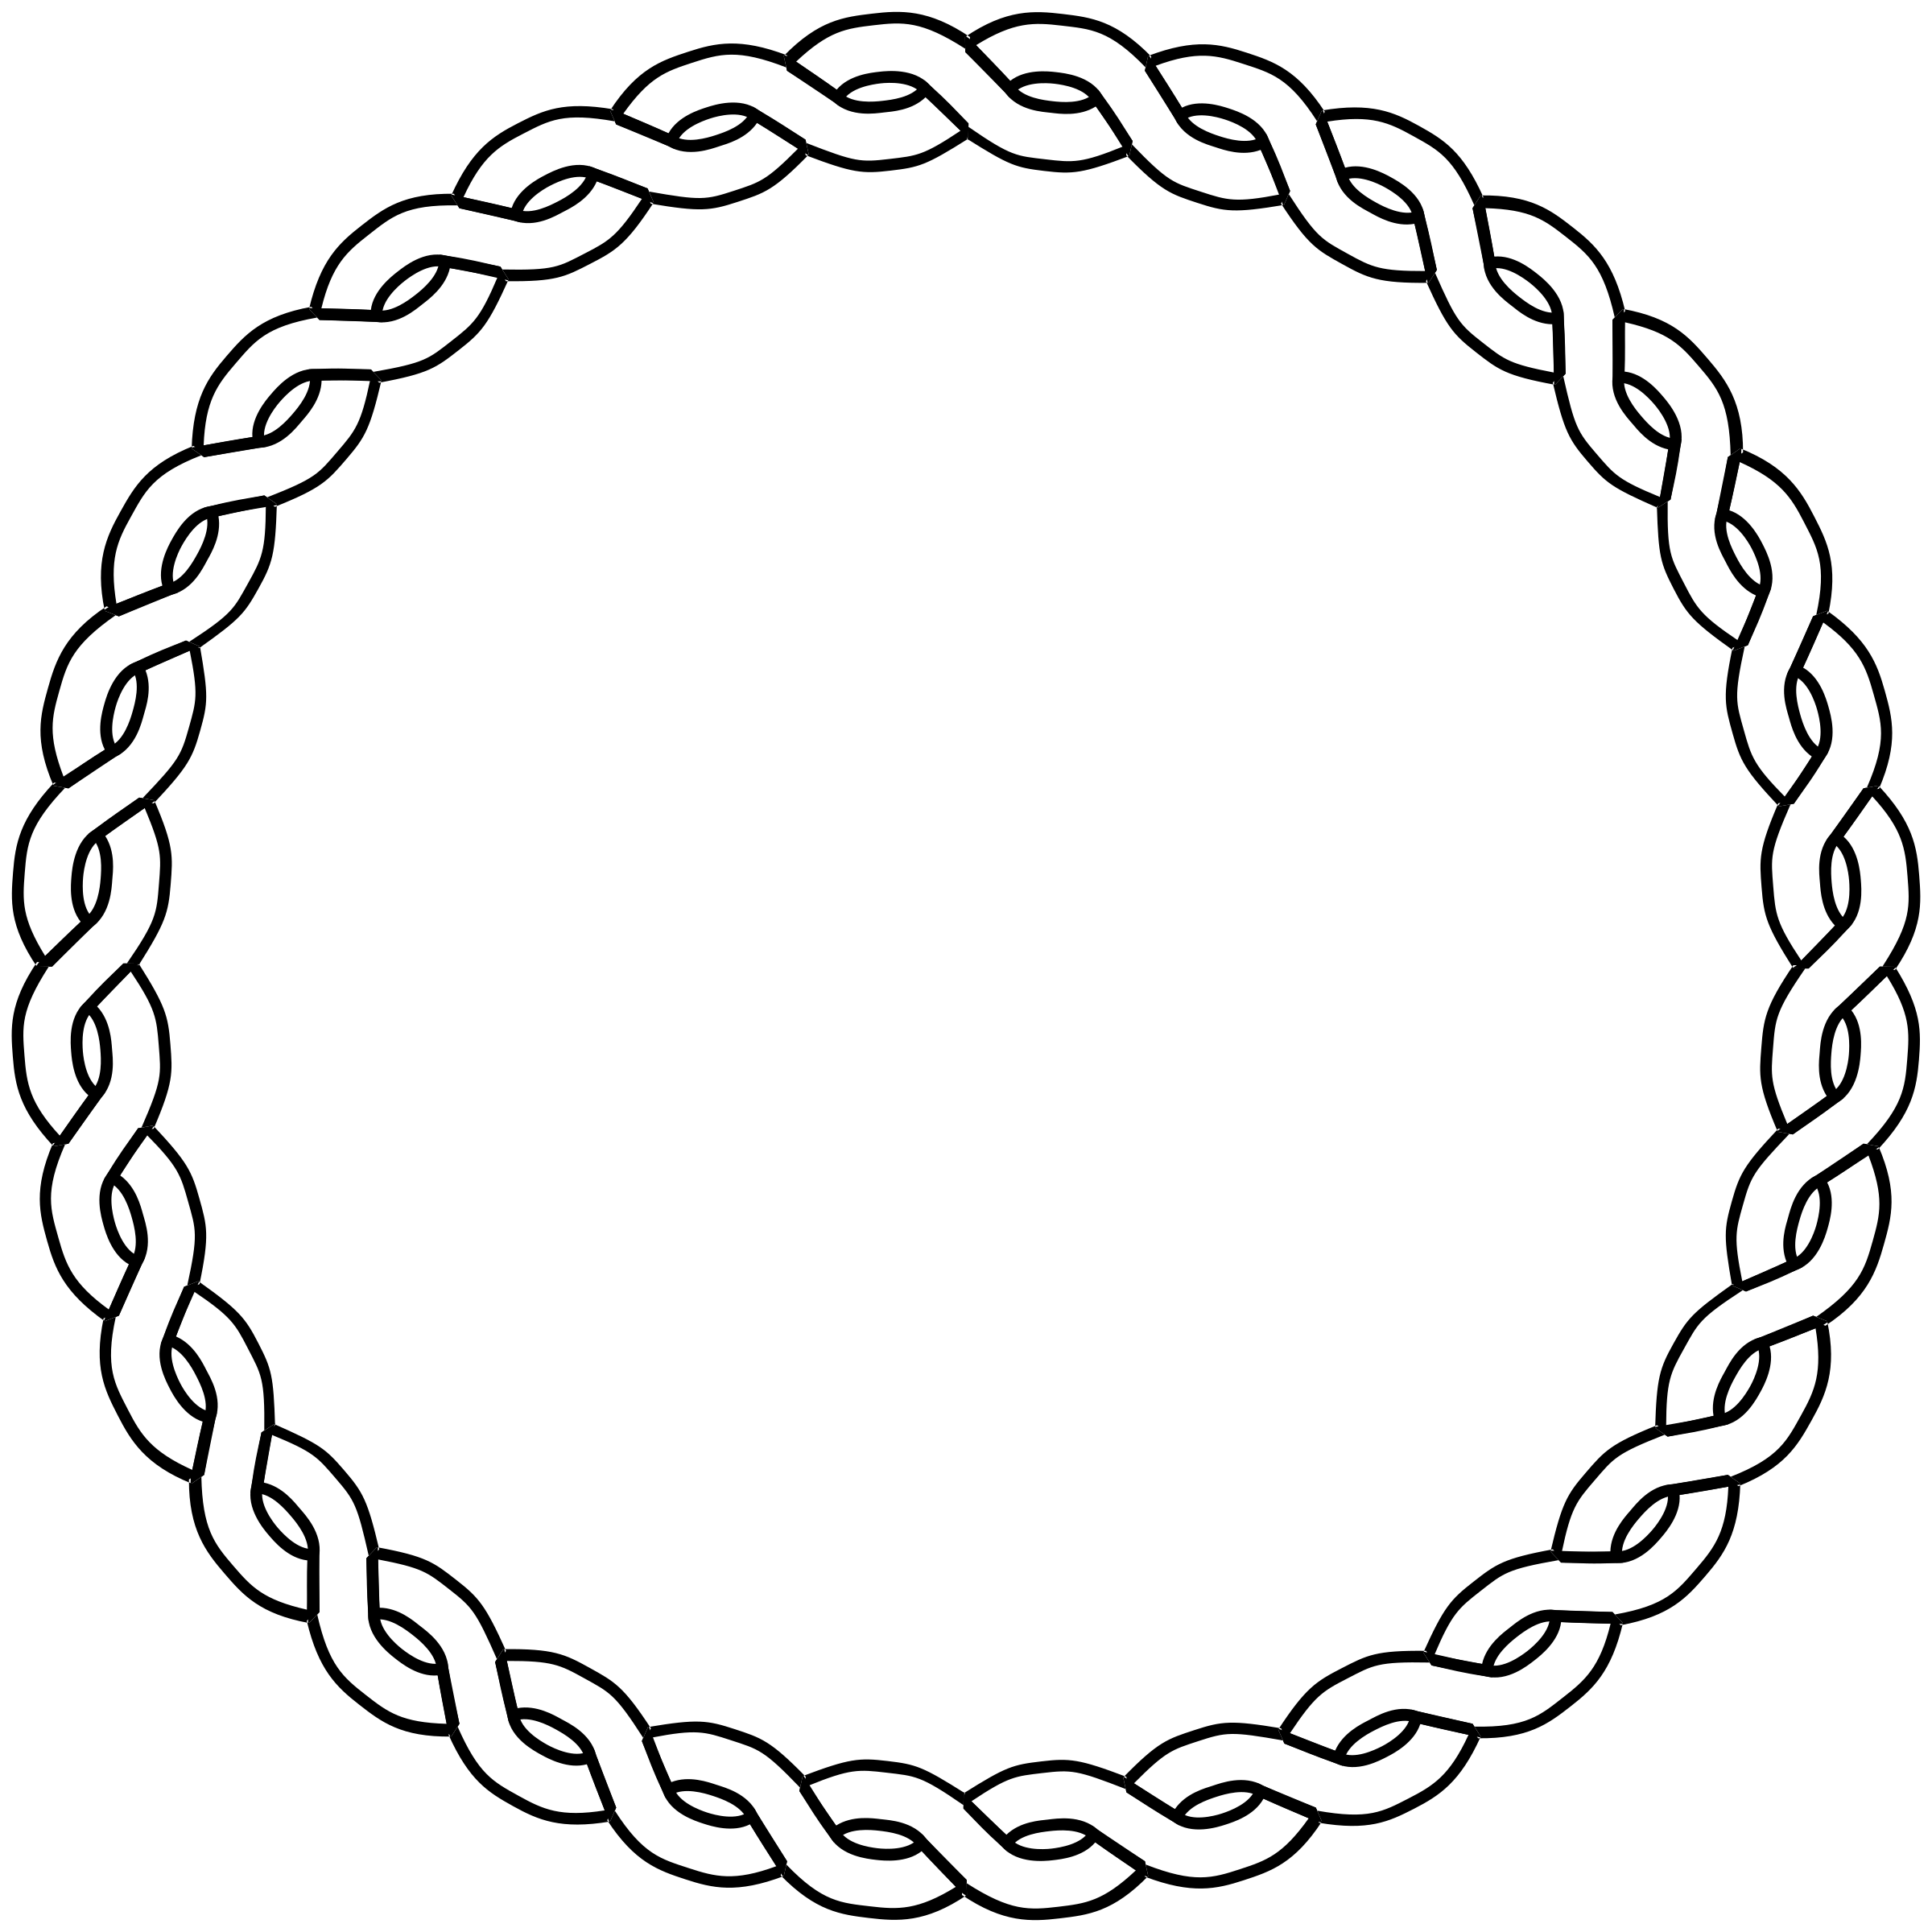 Loop drawing rope twist. Border circle icons png